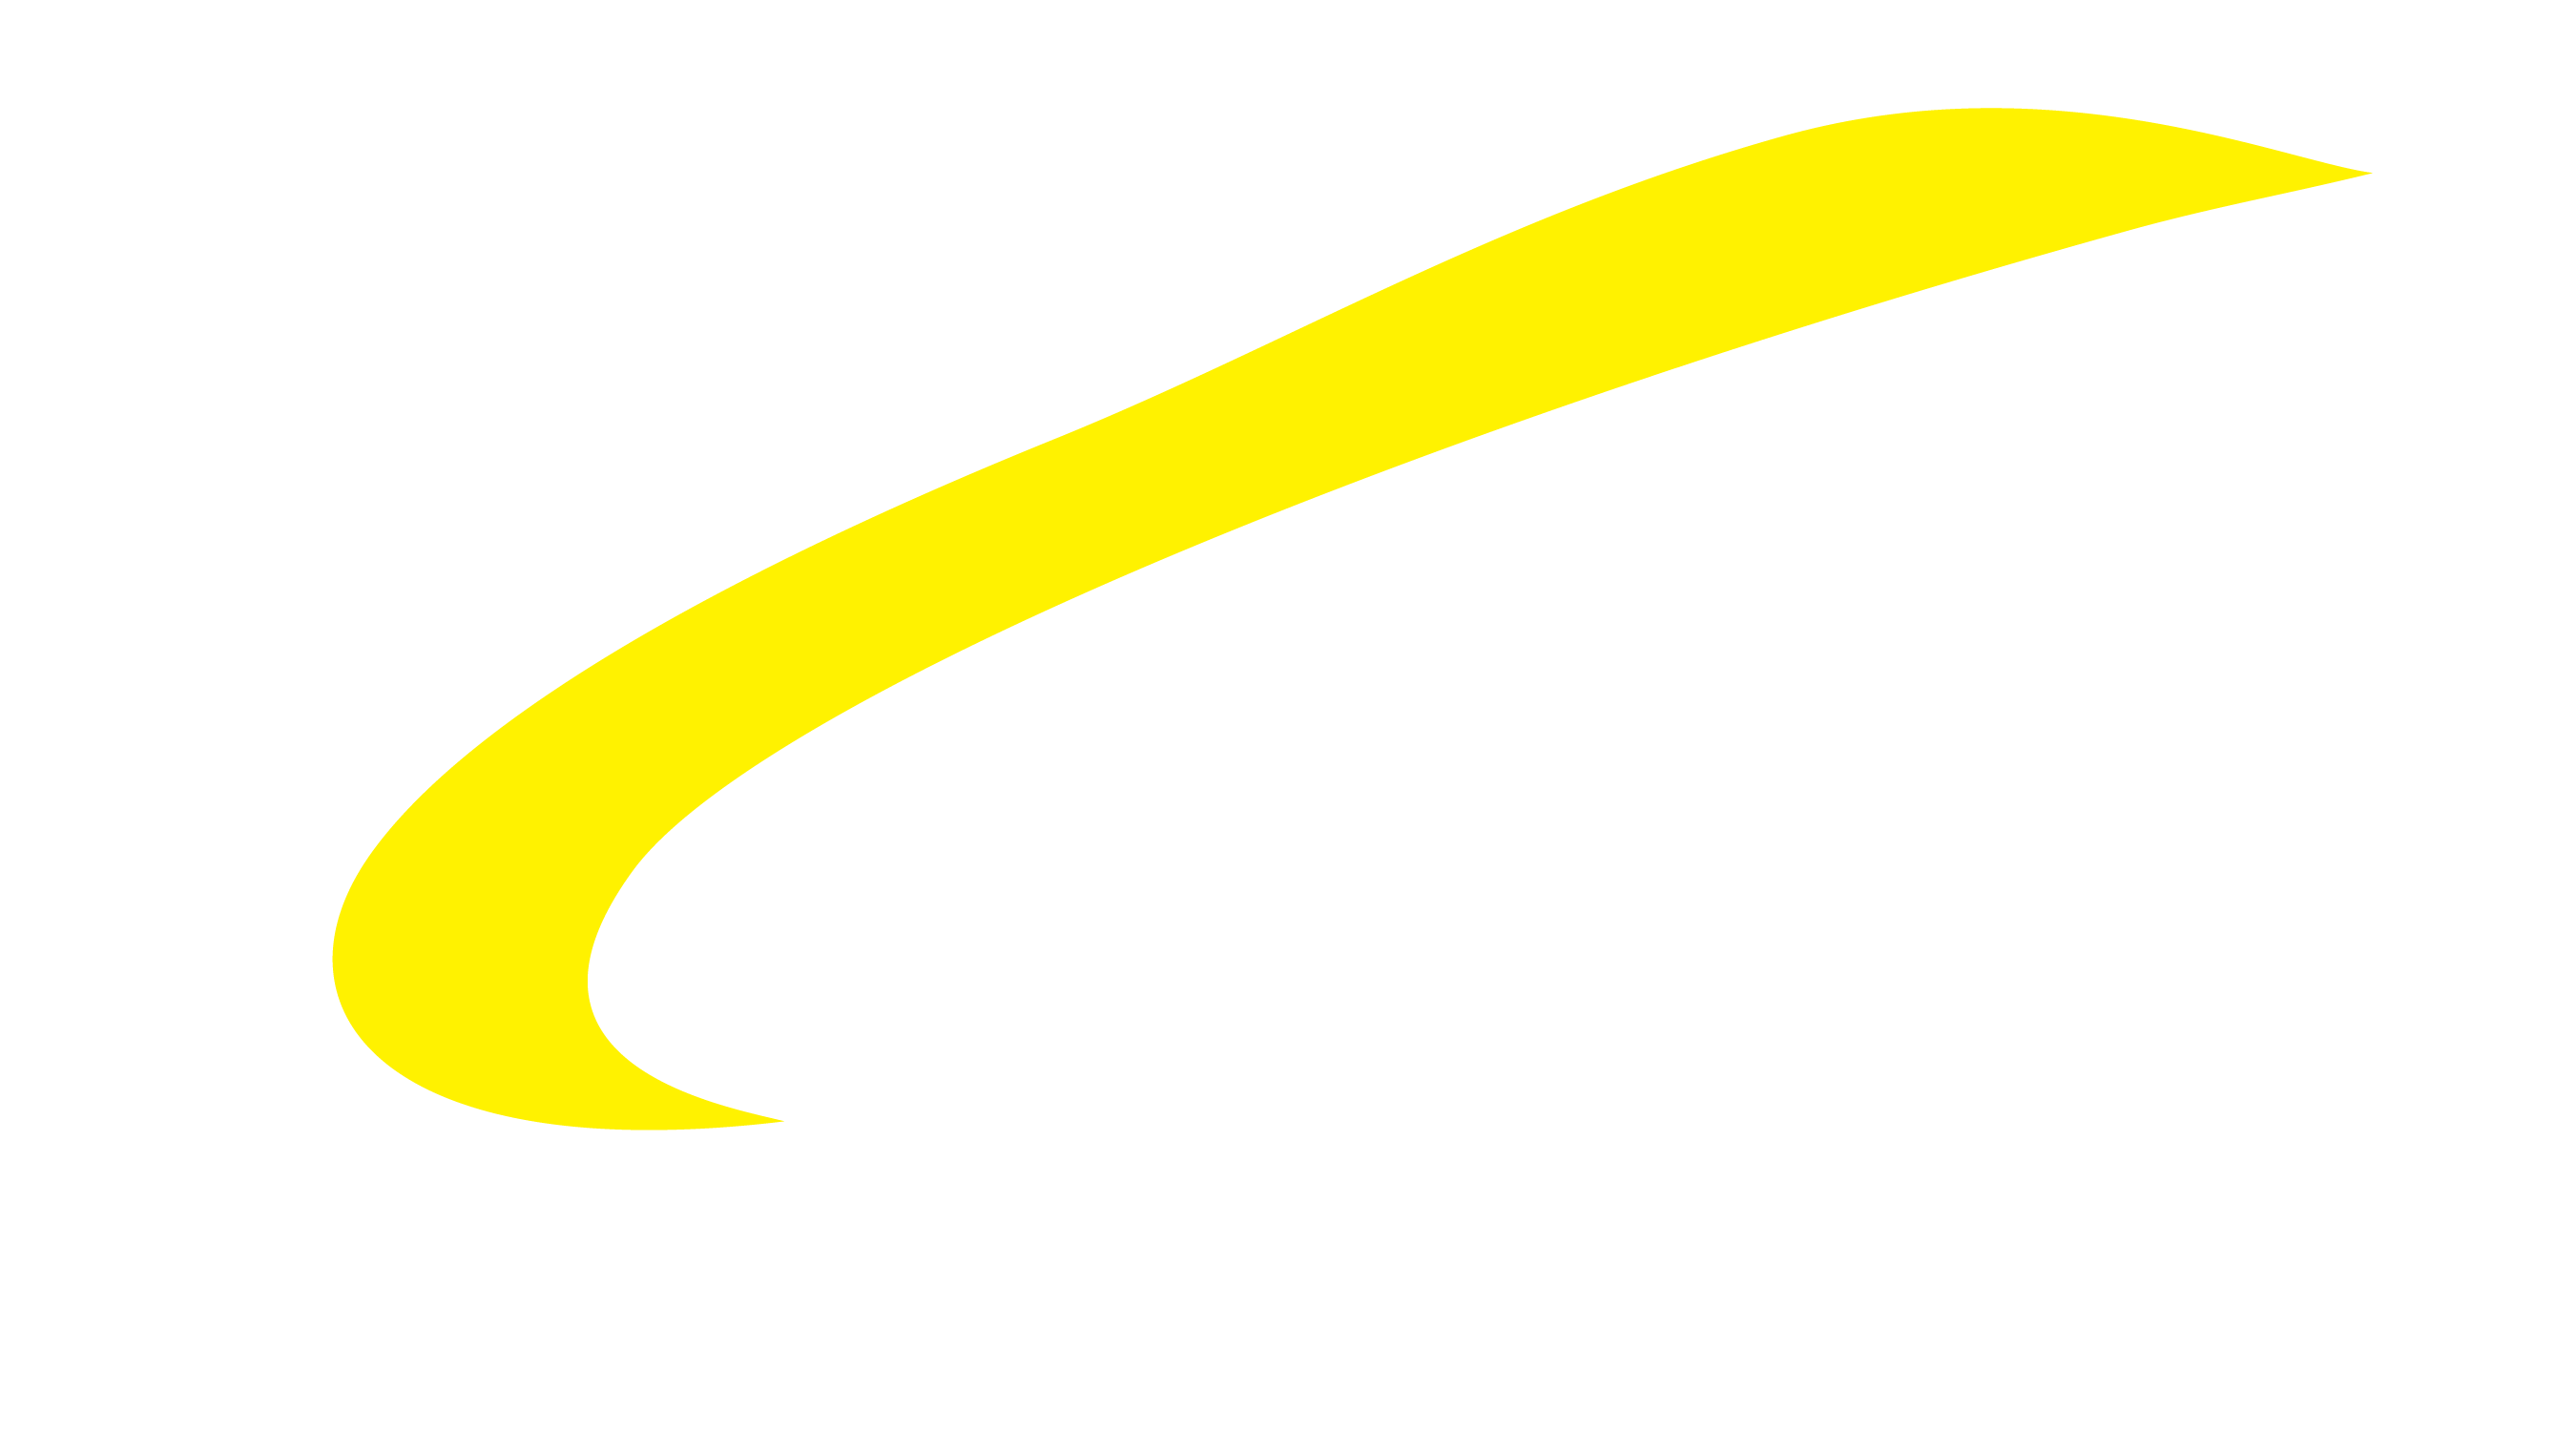 Vestland Data AS